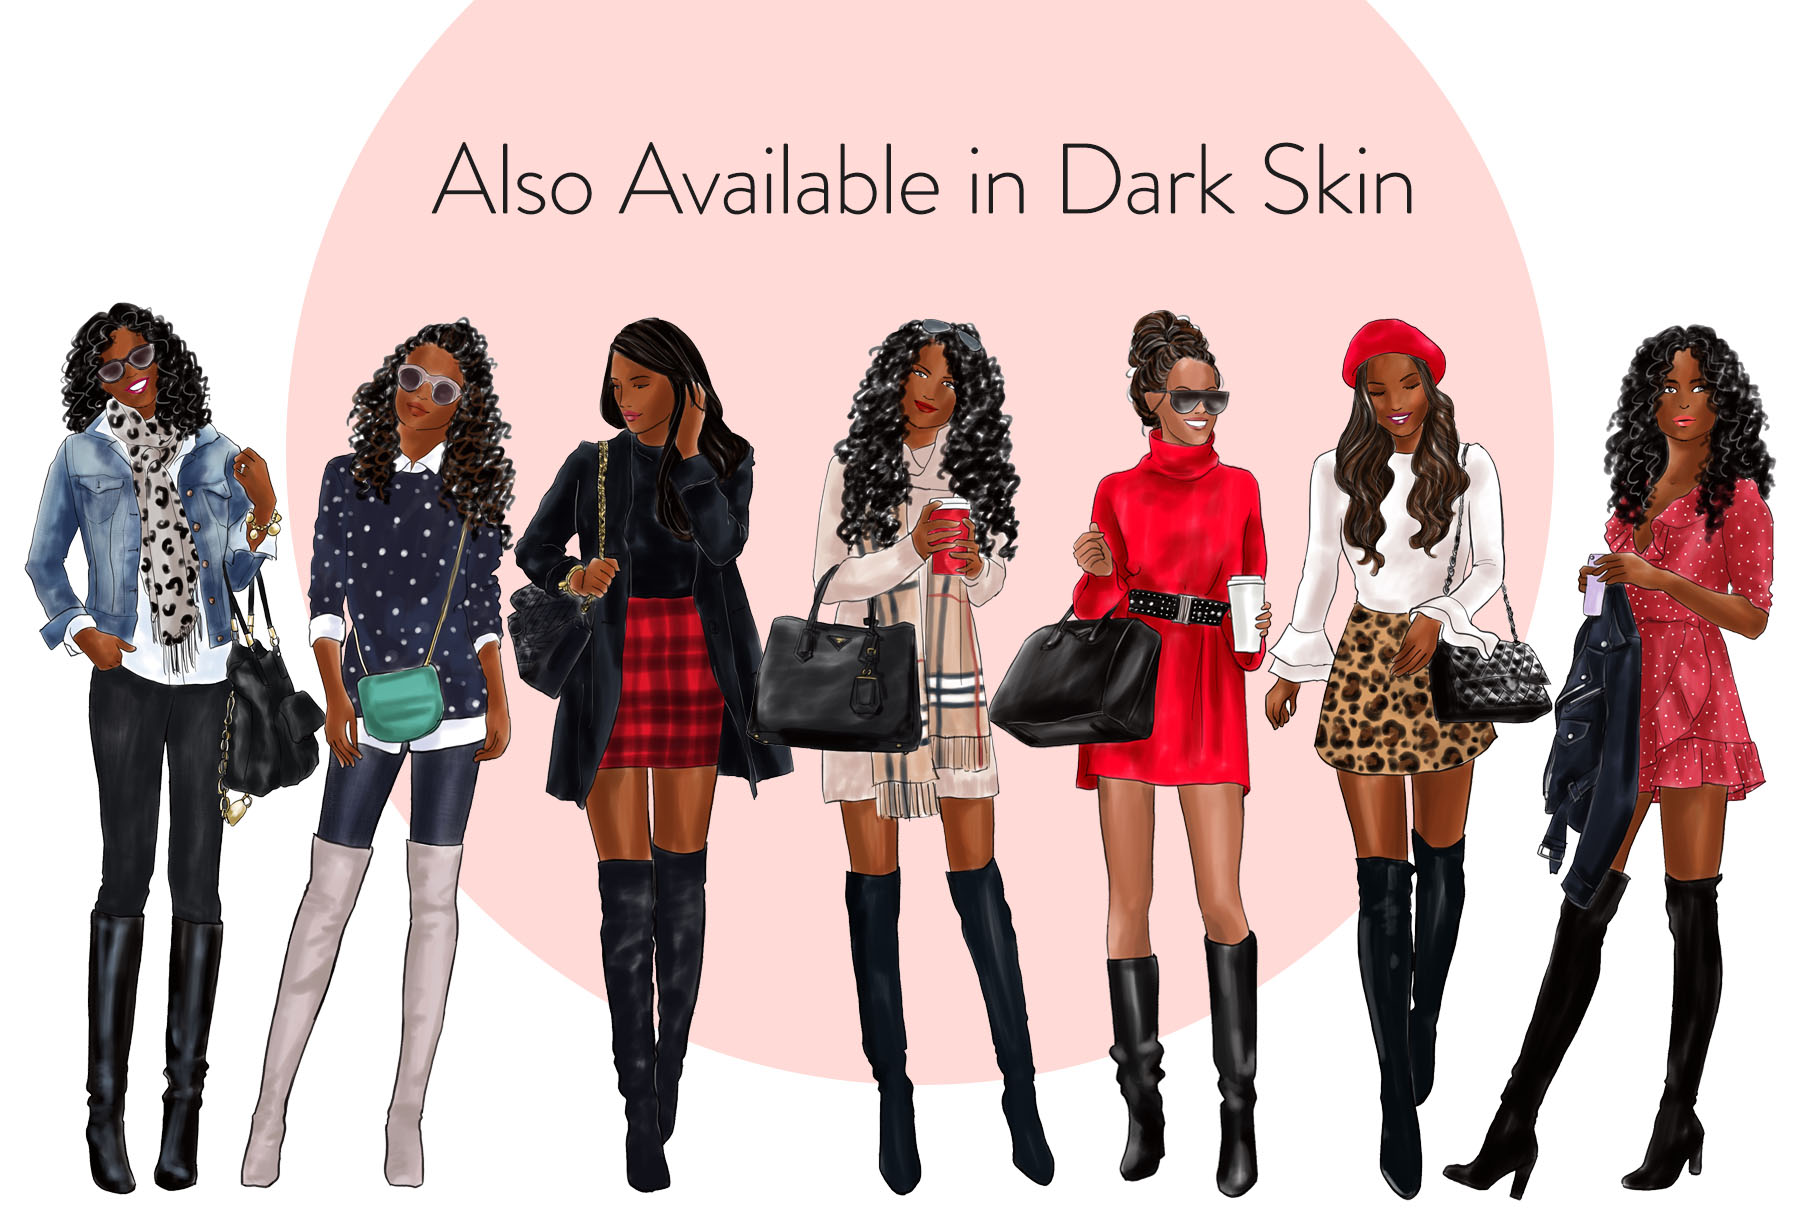 Fashion illustration clipart - Girls in Boots 1 - Light Skin example image 4